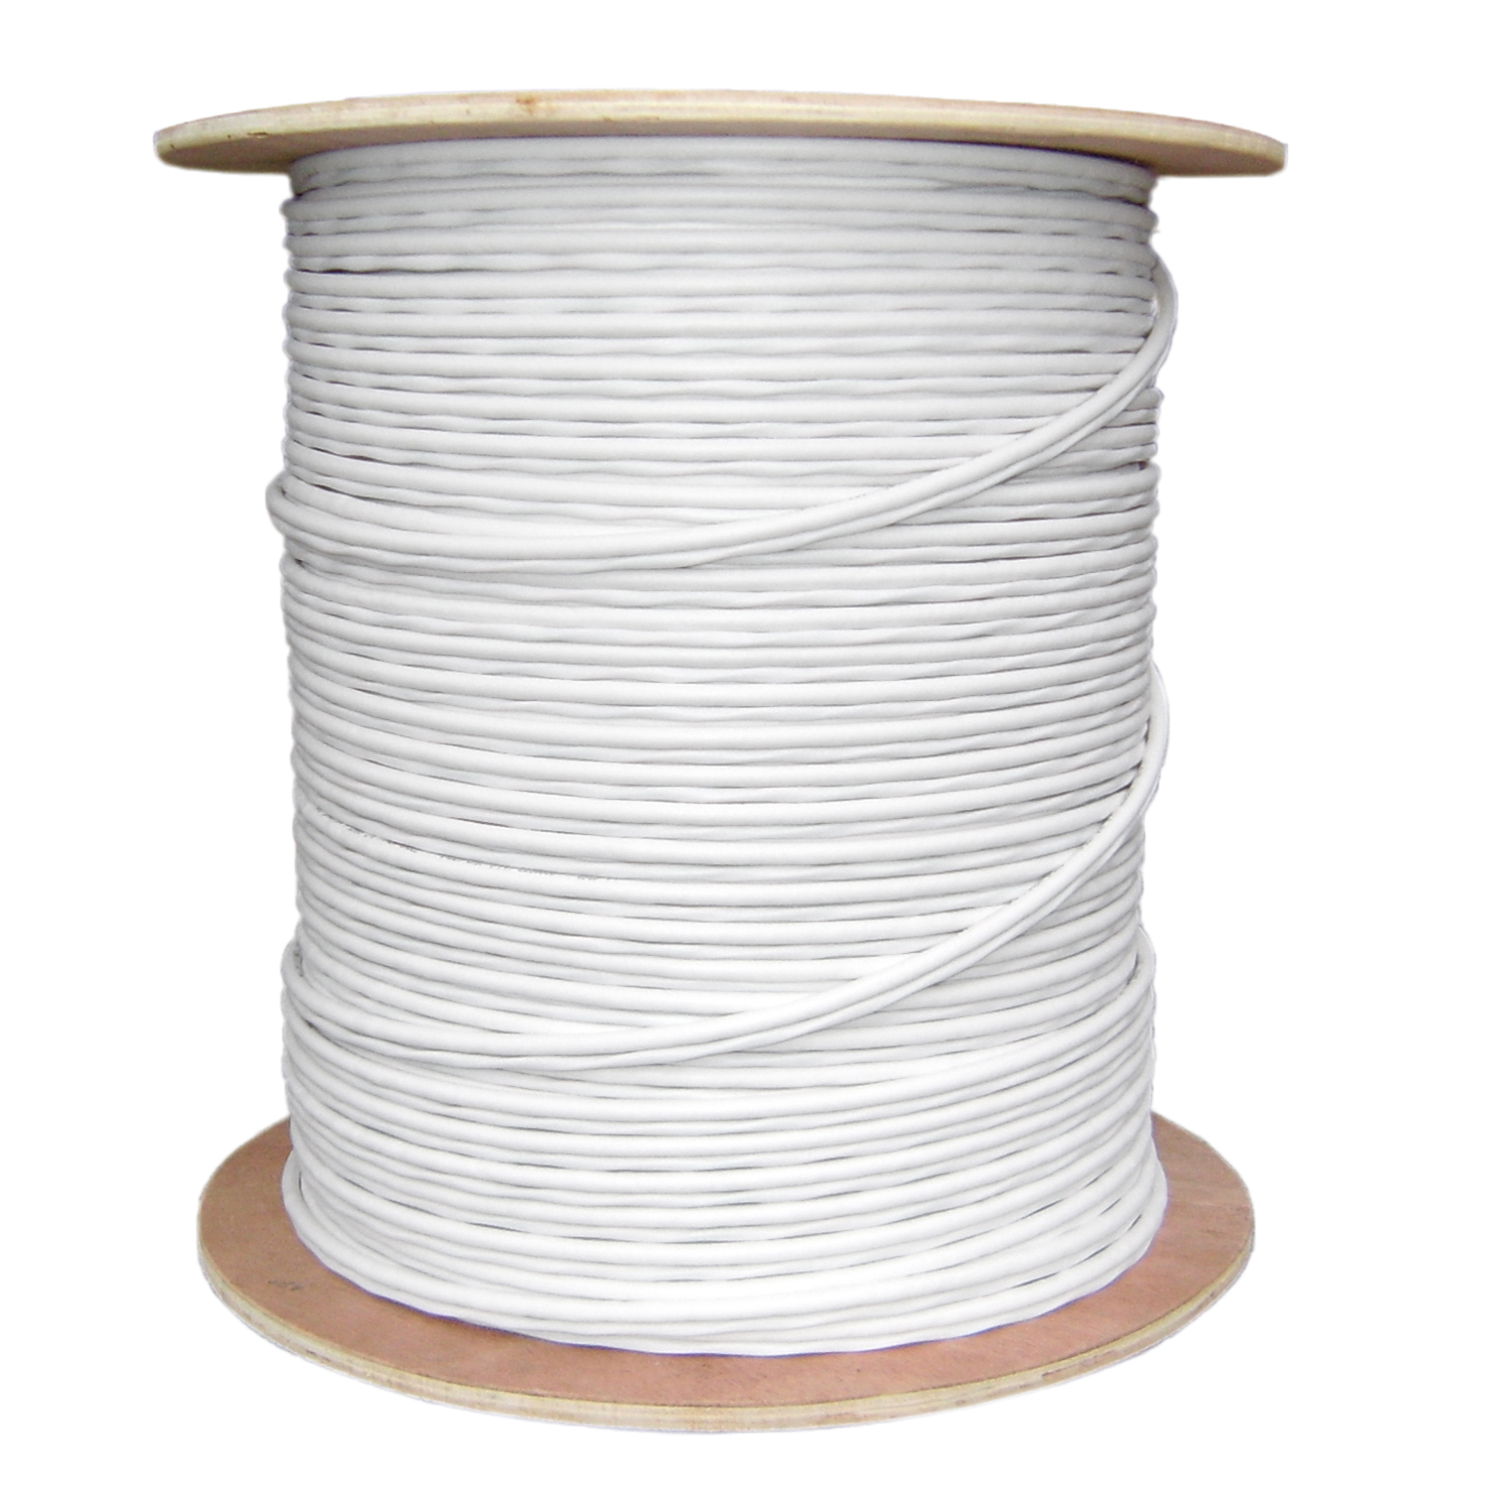 1,000ft Bulk RG59 18/2 Siamese Cable Pullbox, Copper - White